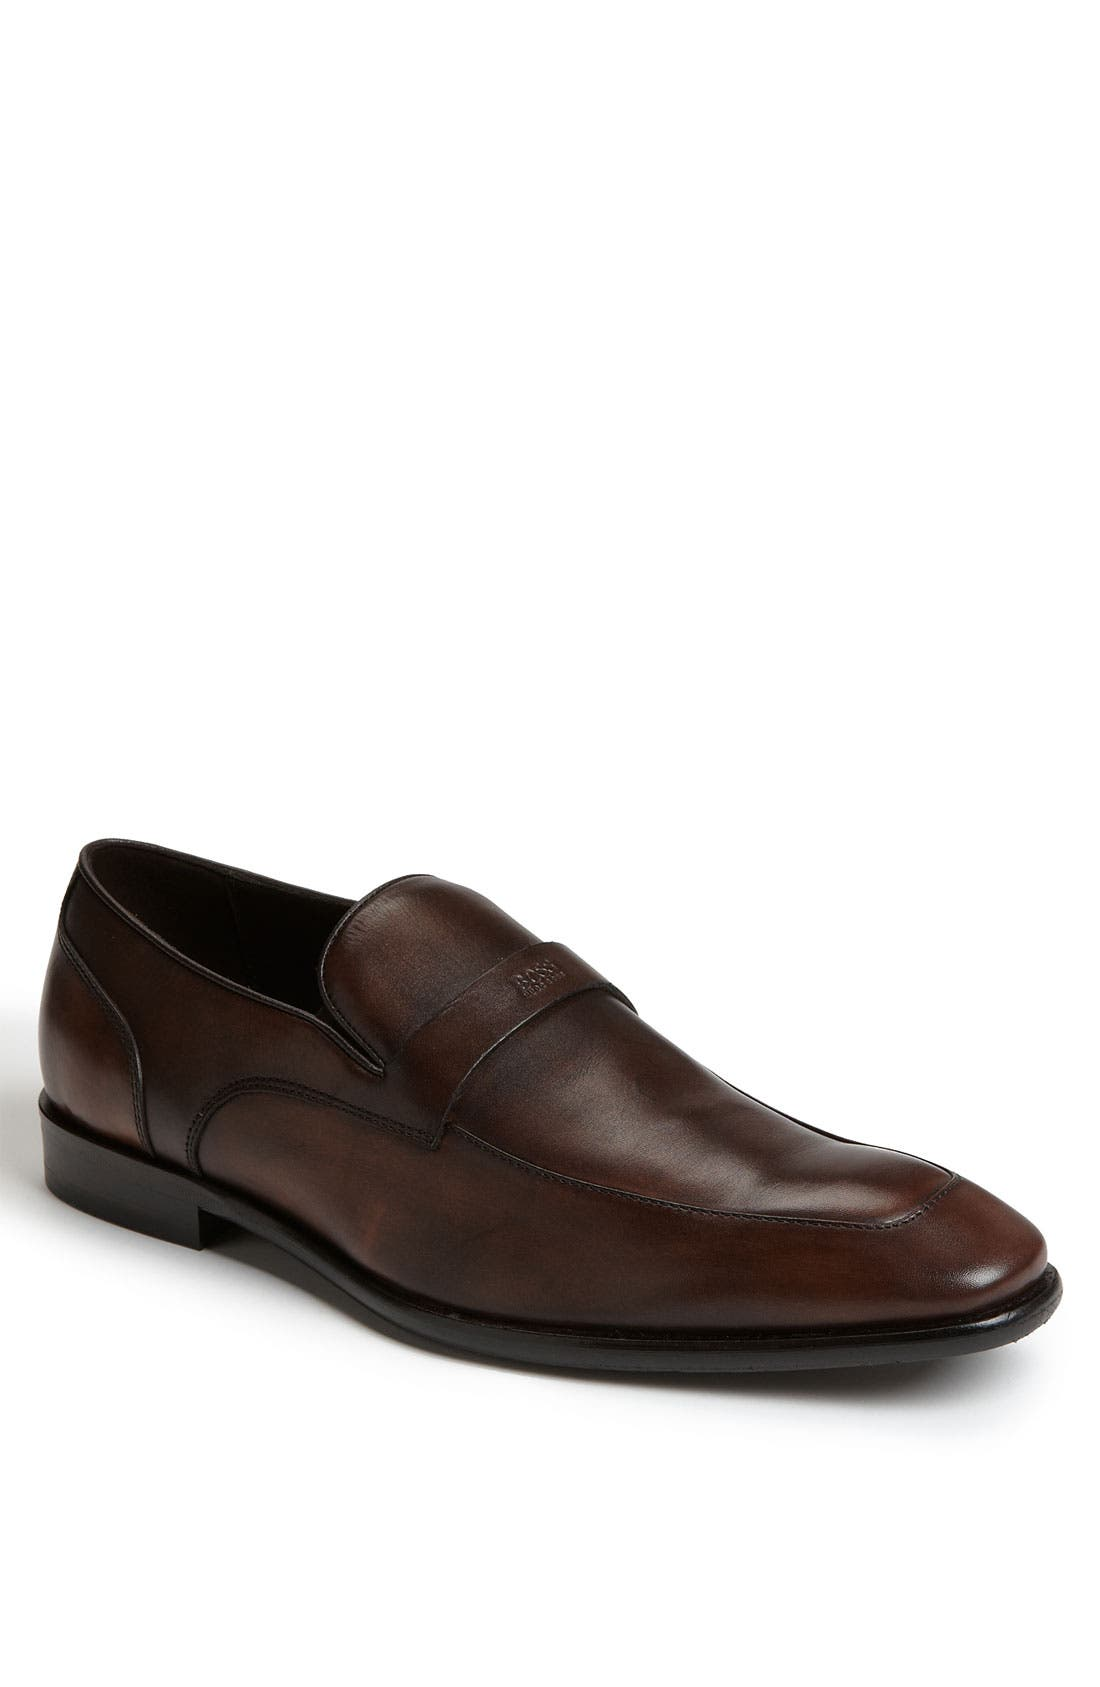 Alternate Image 1 Selected - BOSS HUGO BOSS 'Metero' Loafer